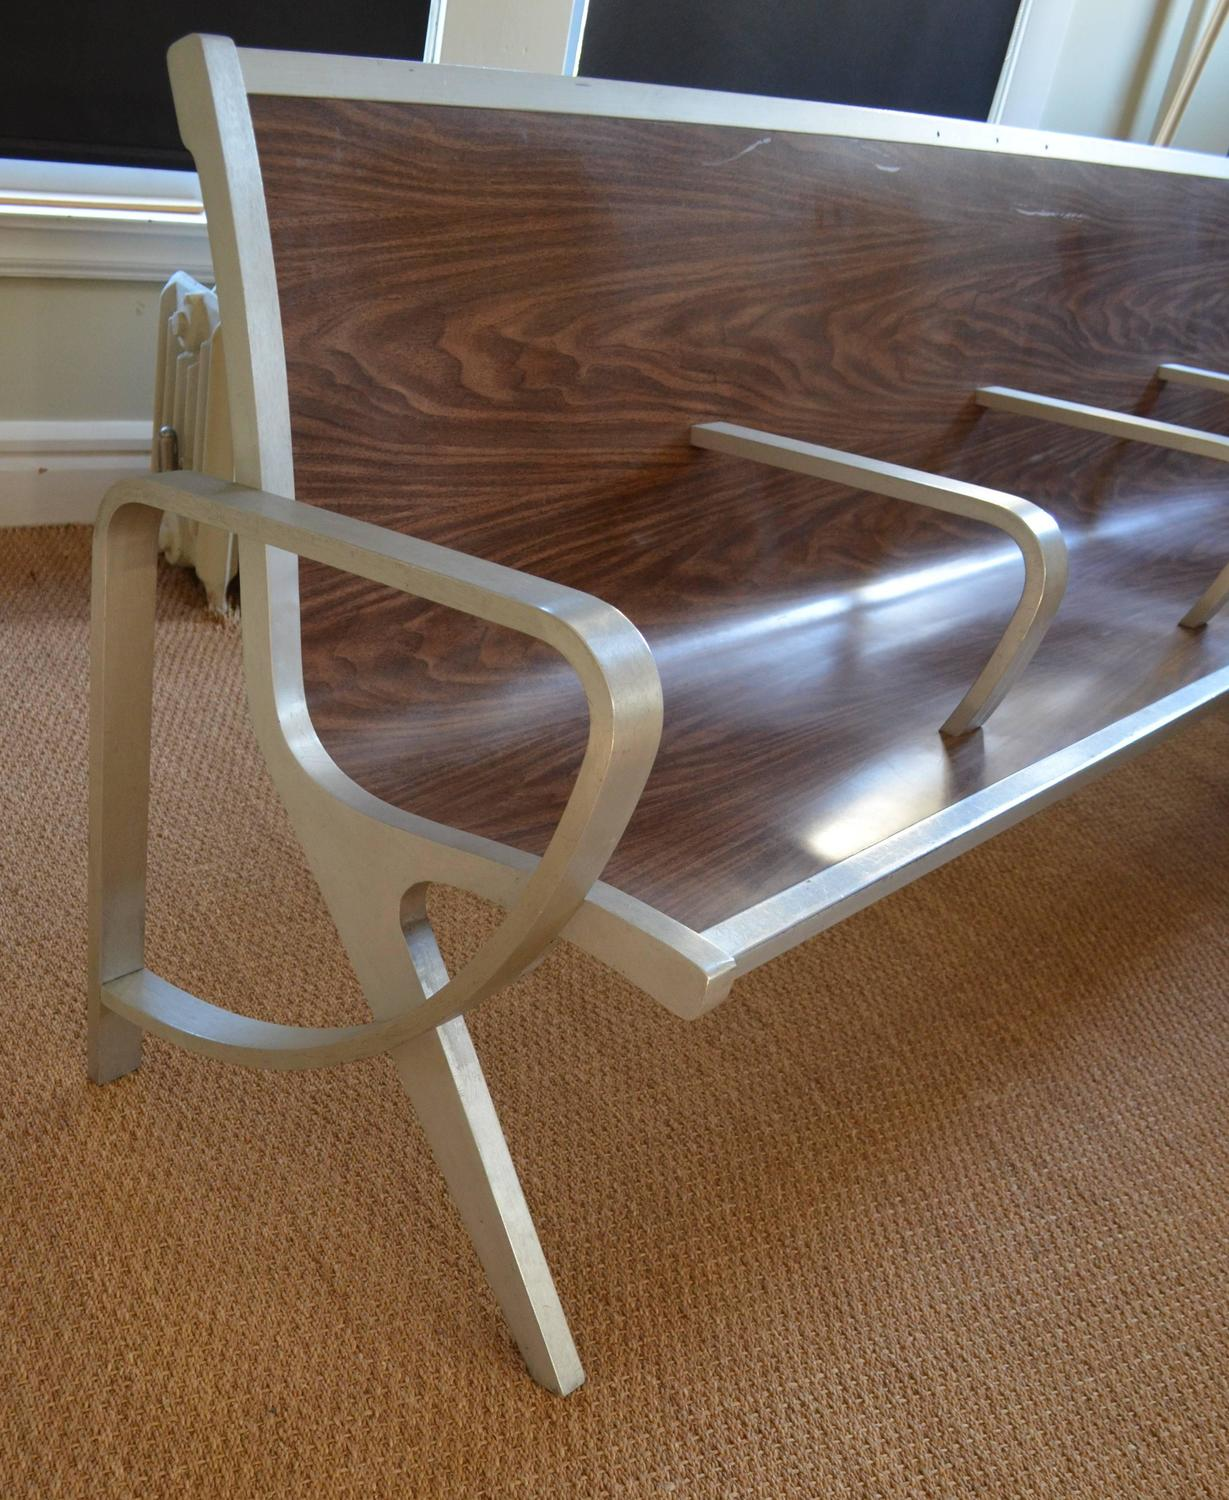 waiting room chairs for sale lawn amazon mid century bench from of train bus depot